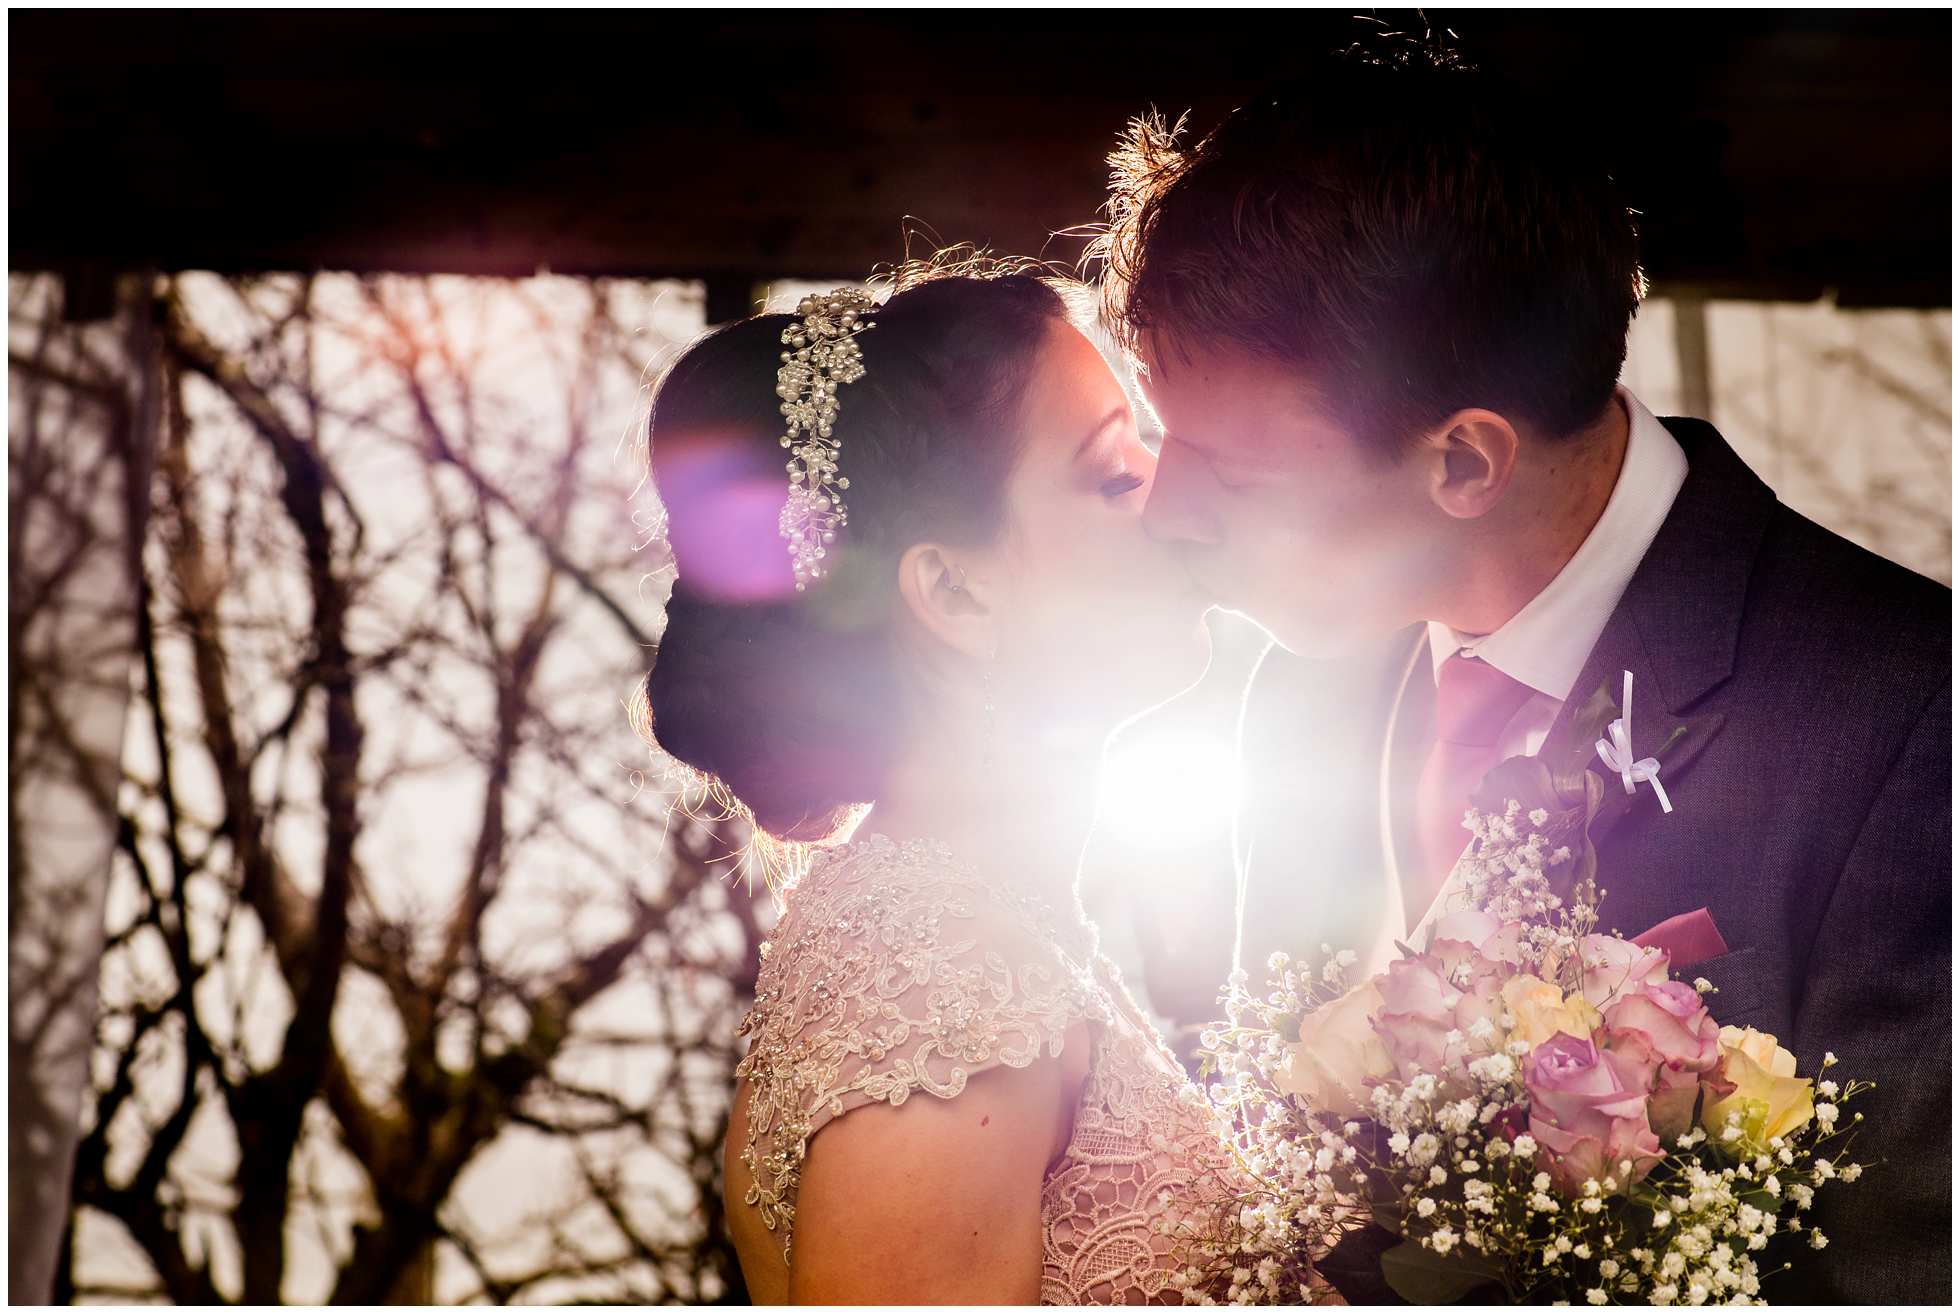 Pow! Backlit awesome shot of Bride and groom kissing Trevena Cornwall Wedding Photography